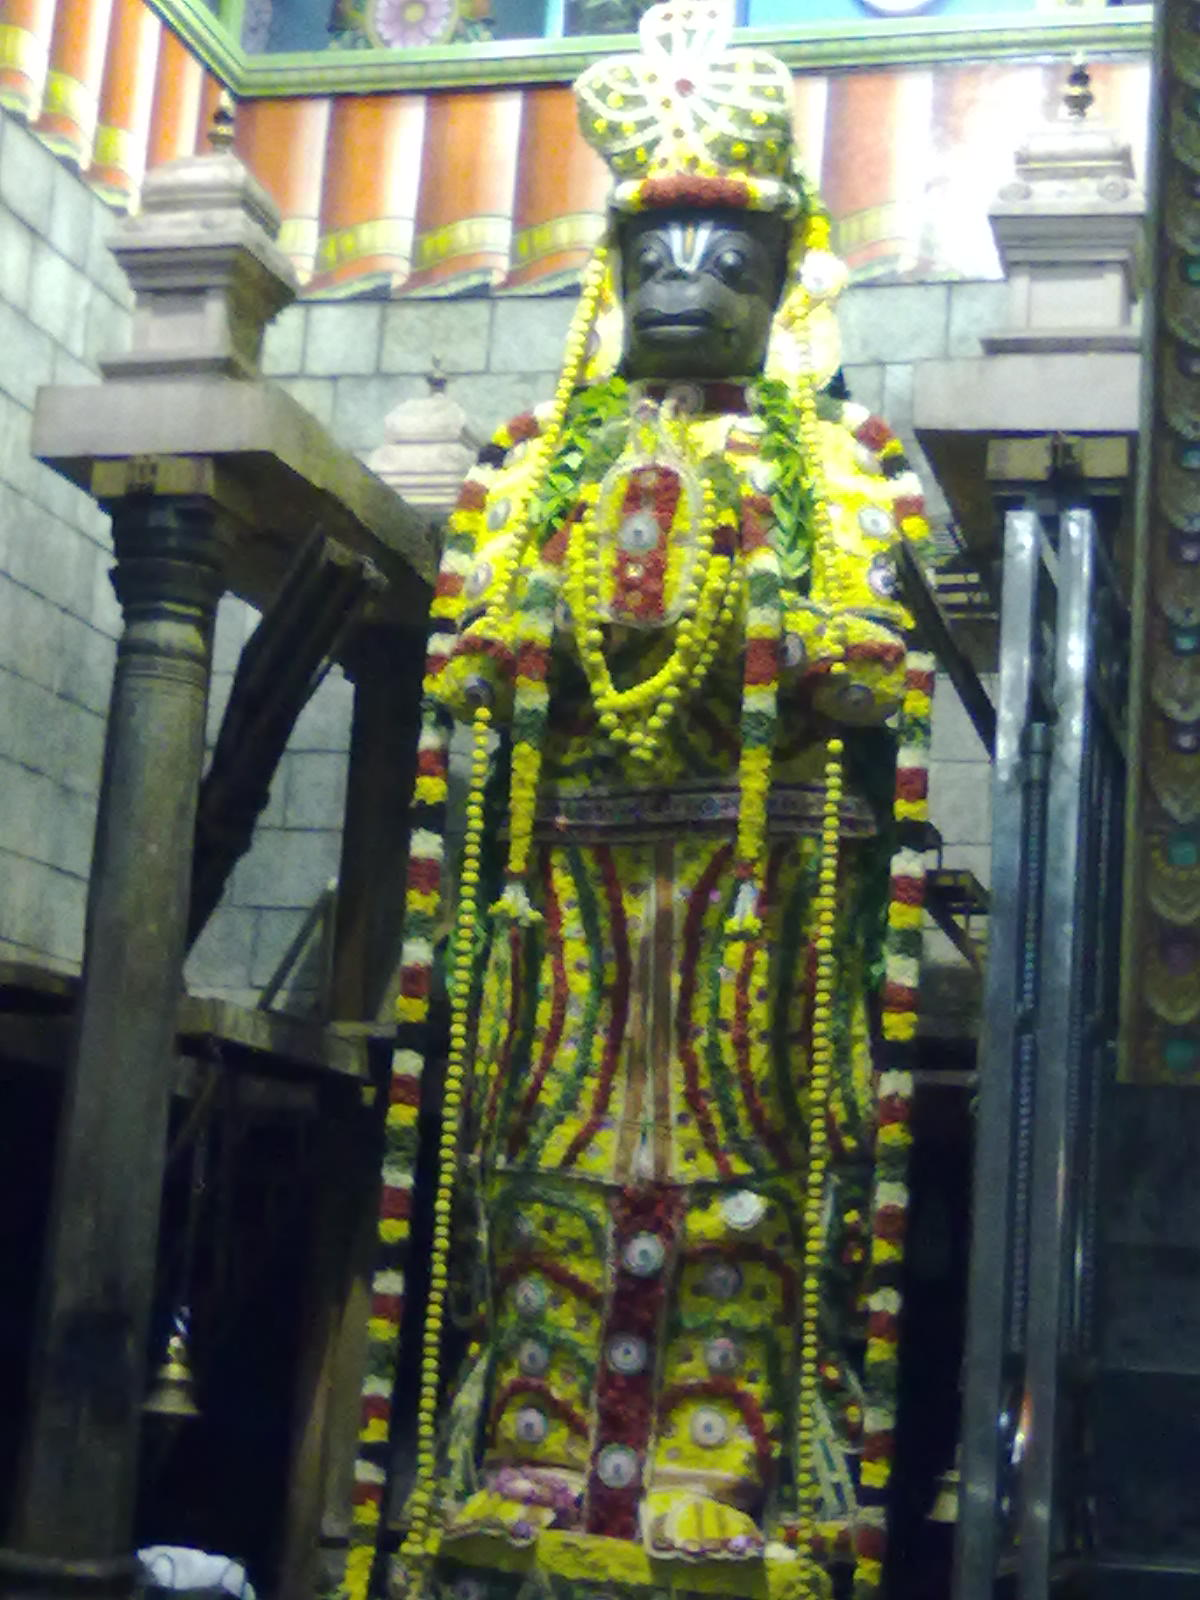 http://upload.wikimedia.org/wikipedia/commons/a/a6/Namakkal_Anjaneyar.jpg